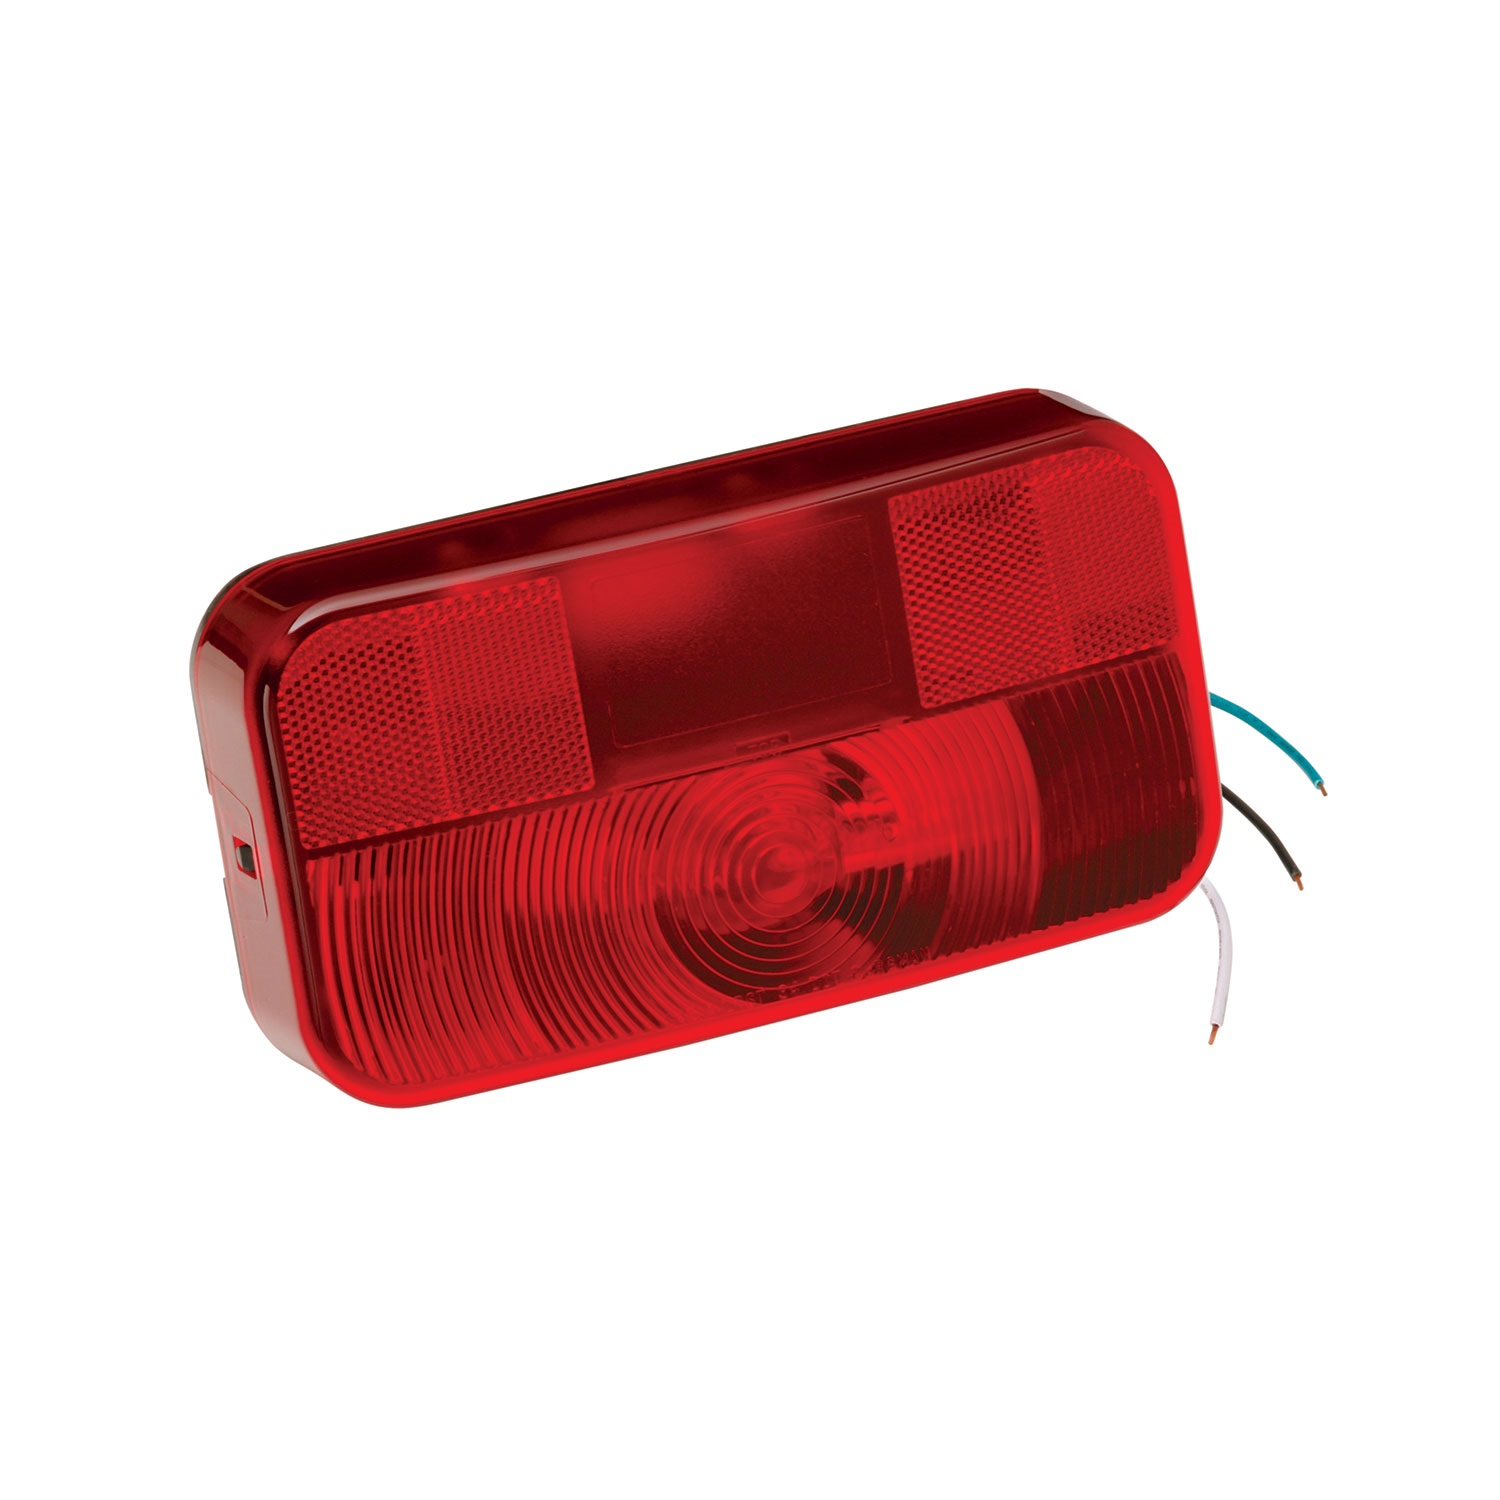 Bargman 54200-013 4 Round LED Tail Lamp with Mounting Flange